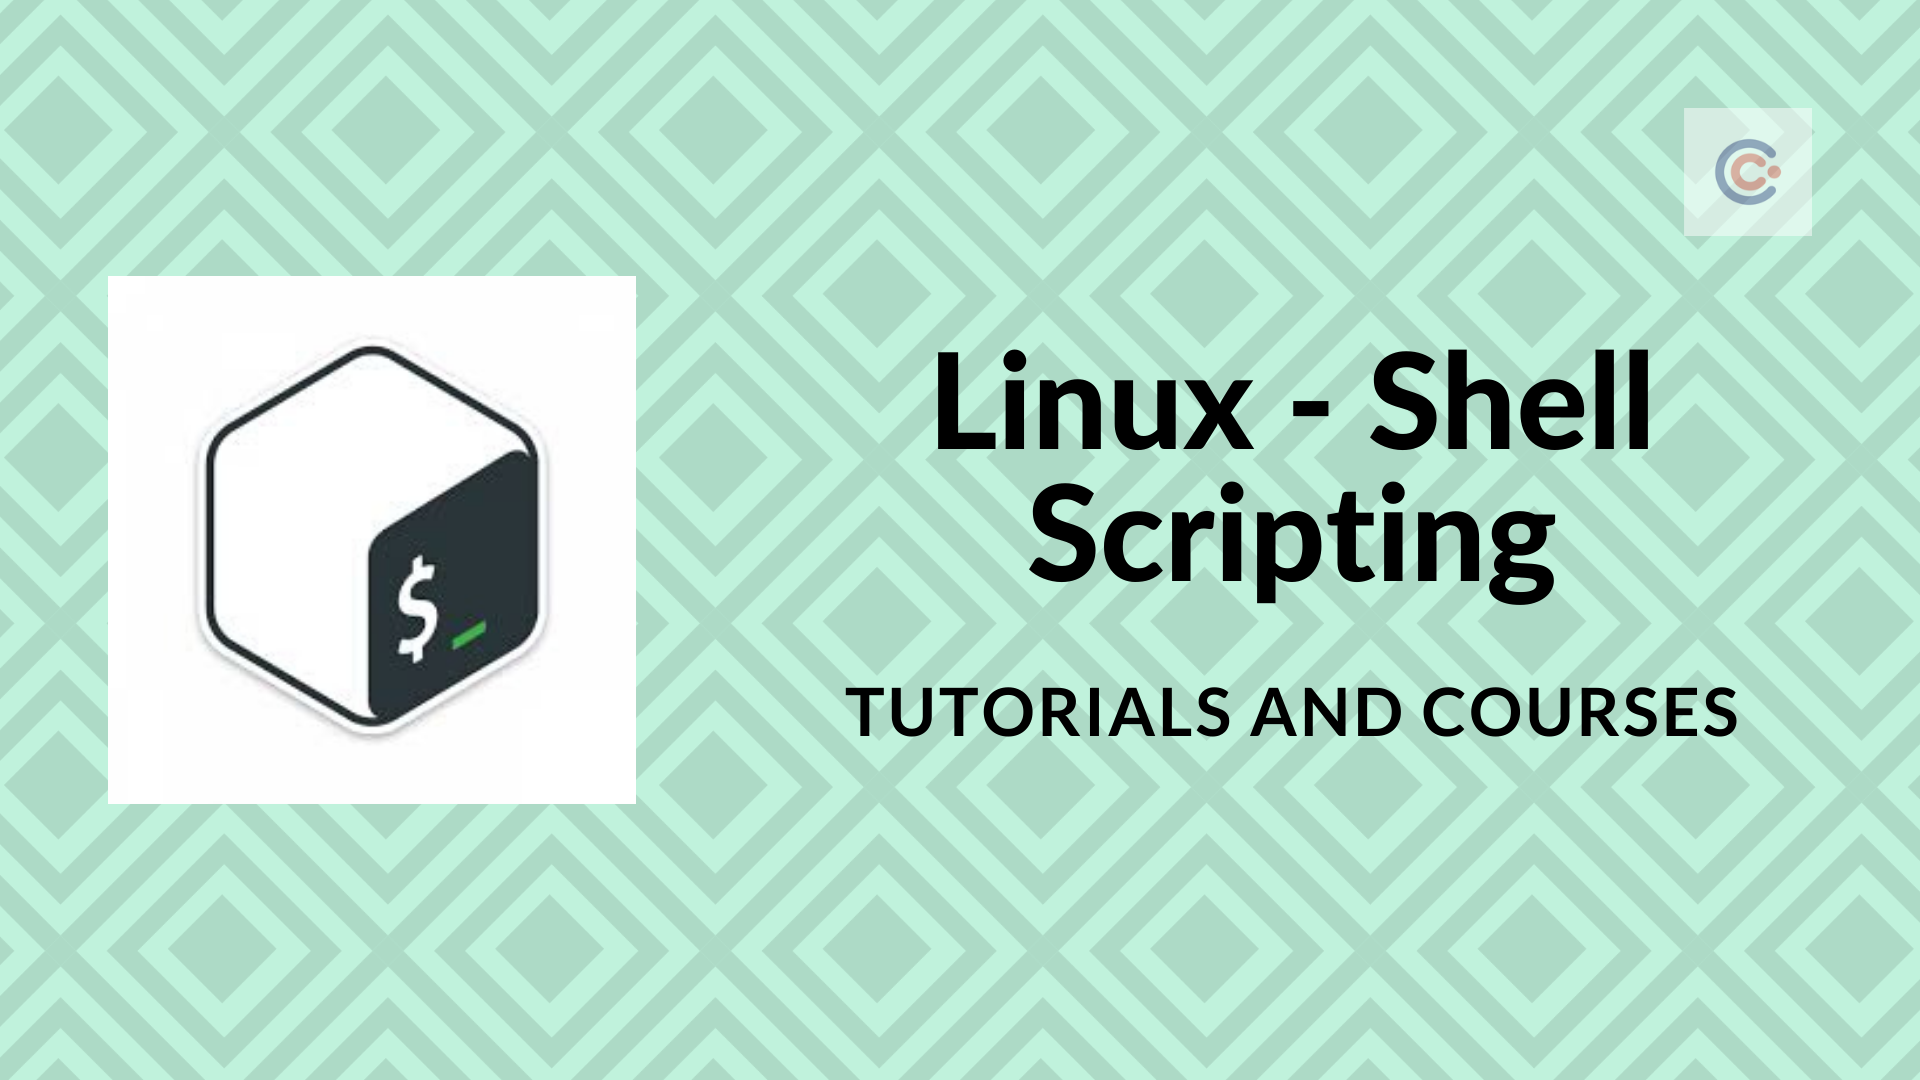 11 Best Linux Shell Scripting Tutorials and Courses - Learn Shell Scripting Online